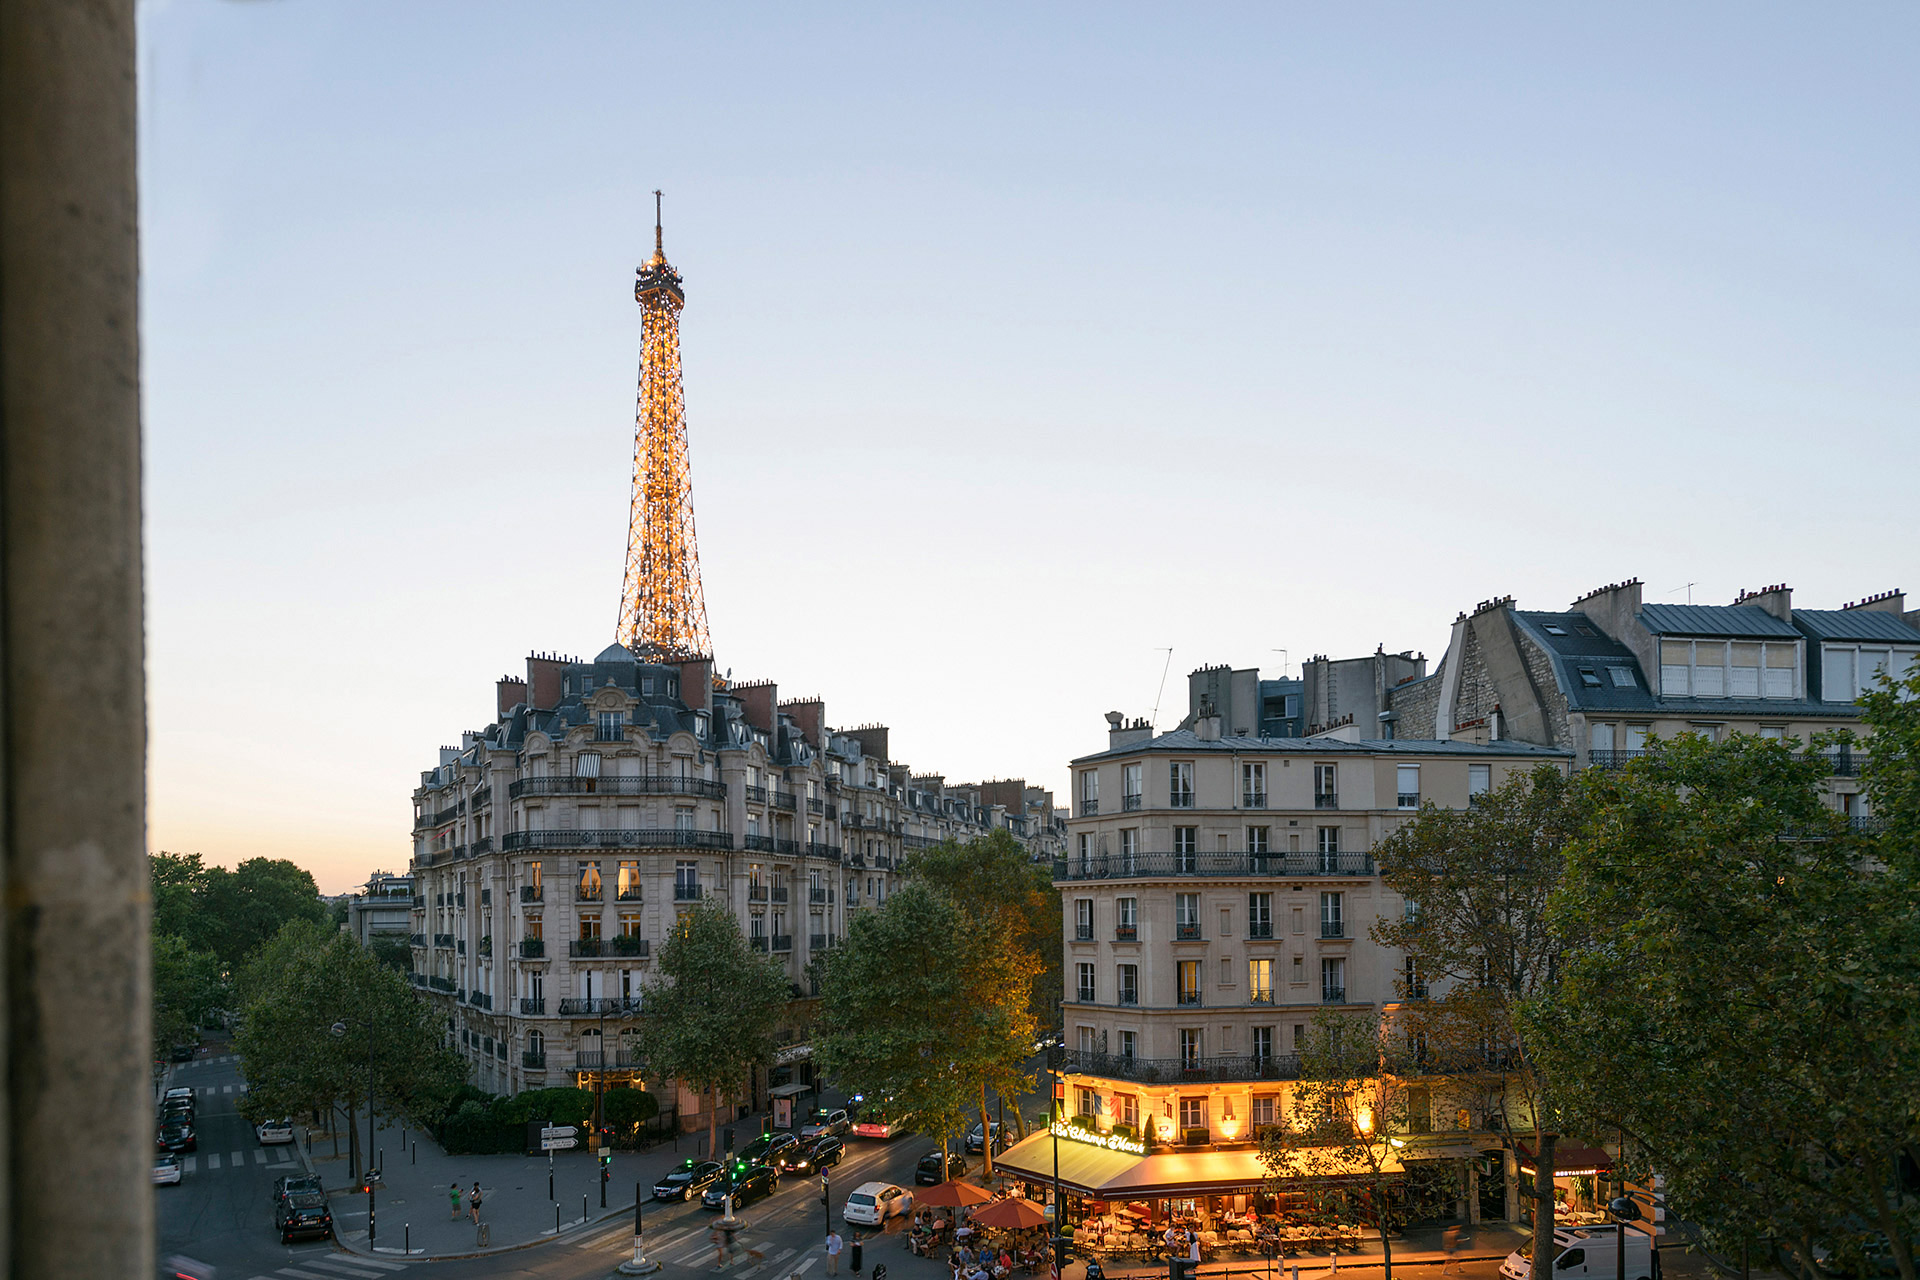 Watch the sunset and the Eiffel Tower in the Clairette vacation rental offered by Paris Perfect